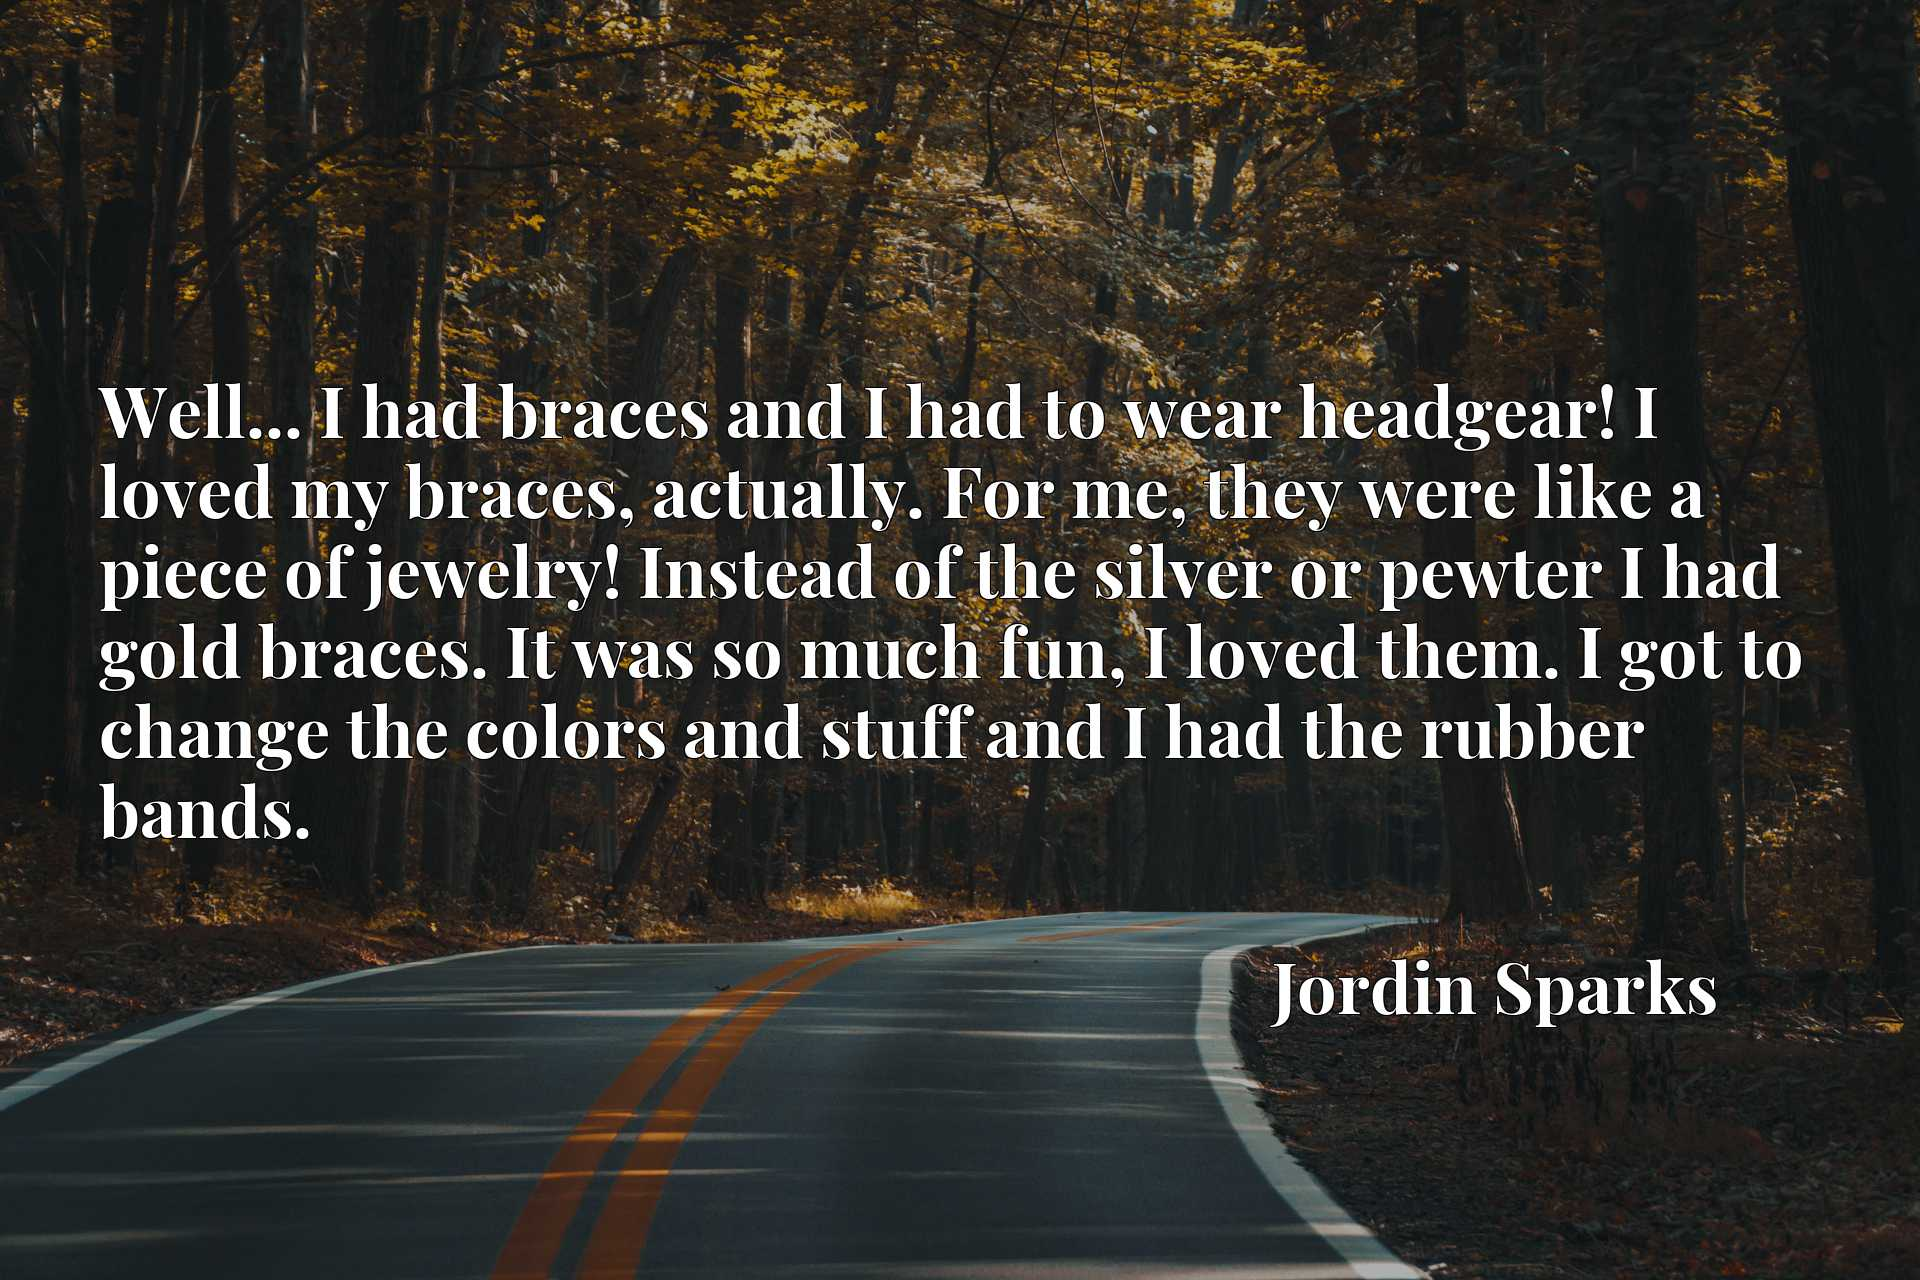 Well... I had braces and I had to wear headgear! I loved my braces, actually. For me, they were like a piece of jewelry! Instead of the silver or pewter I had gold braces. It was so much fun, I loved them. I got to change the colors and stuff and I had the rubber bands.